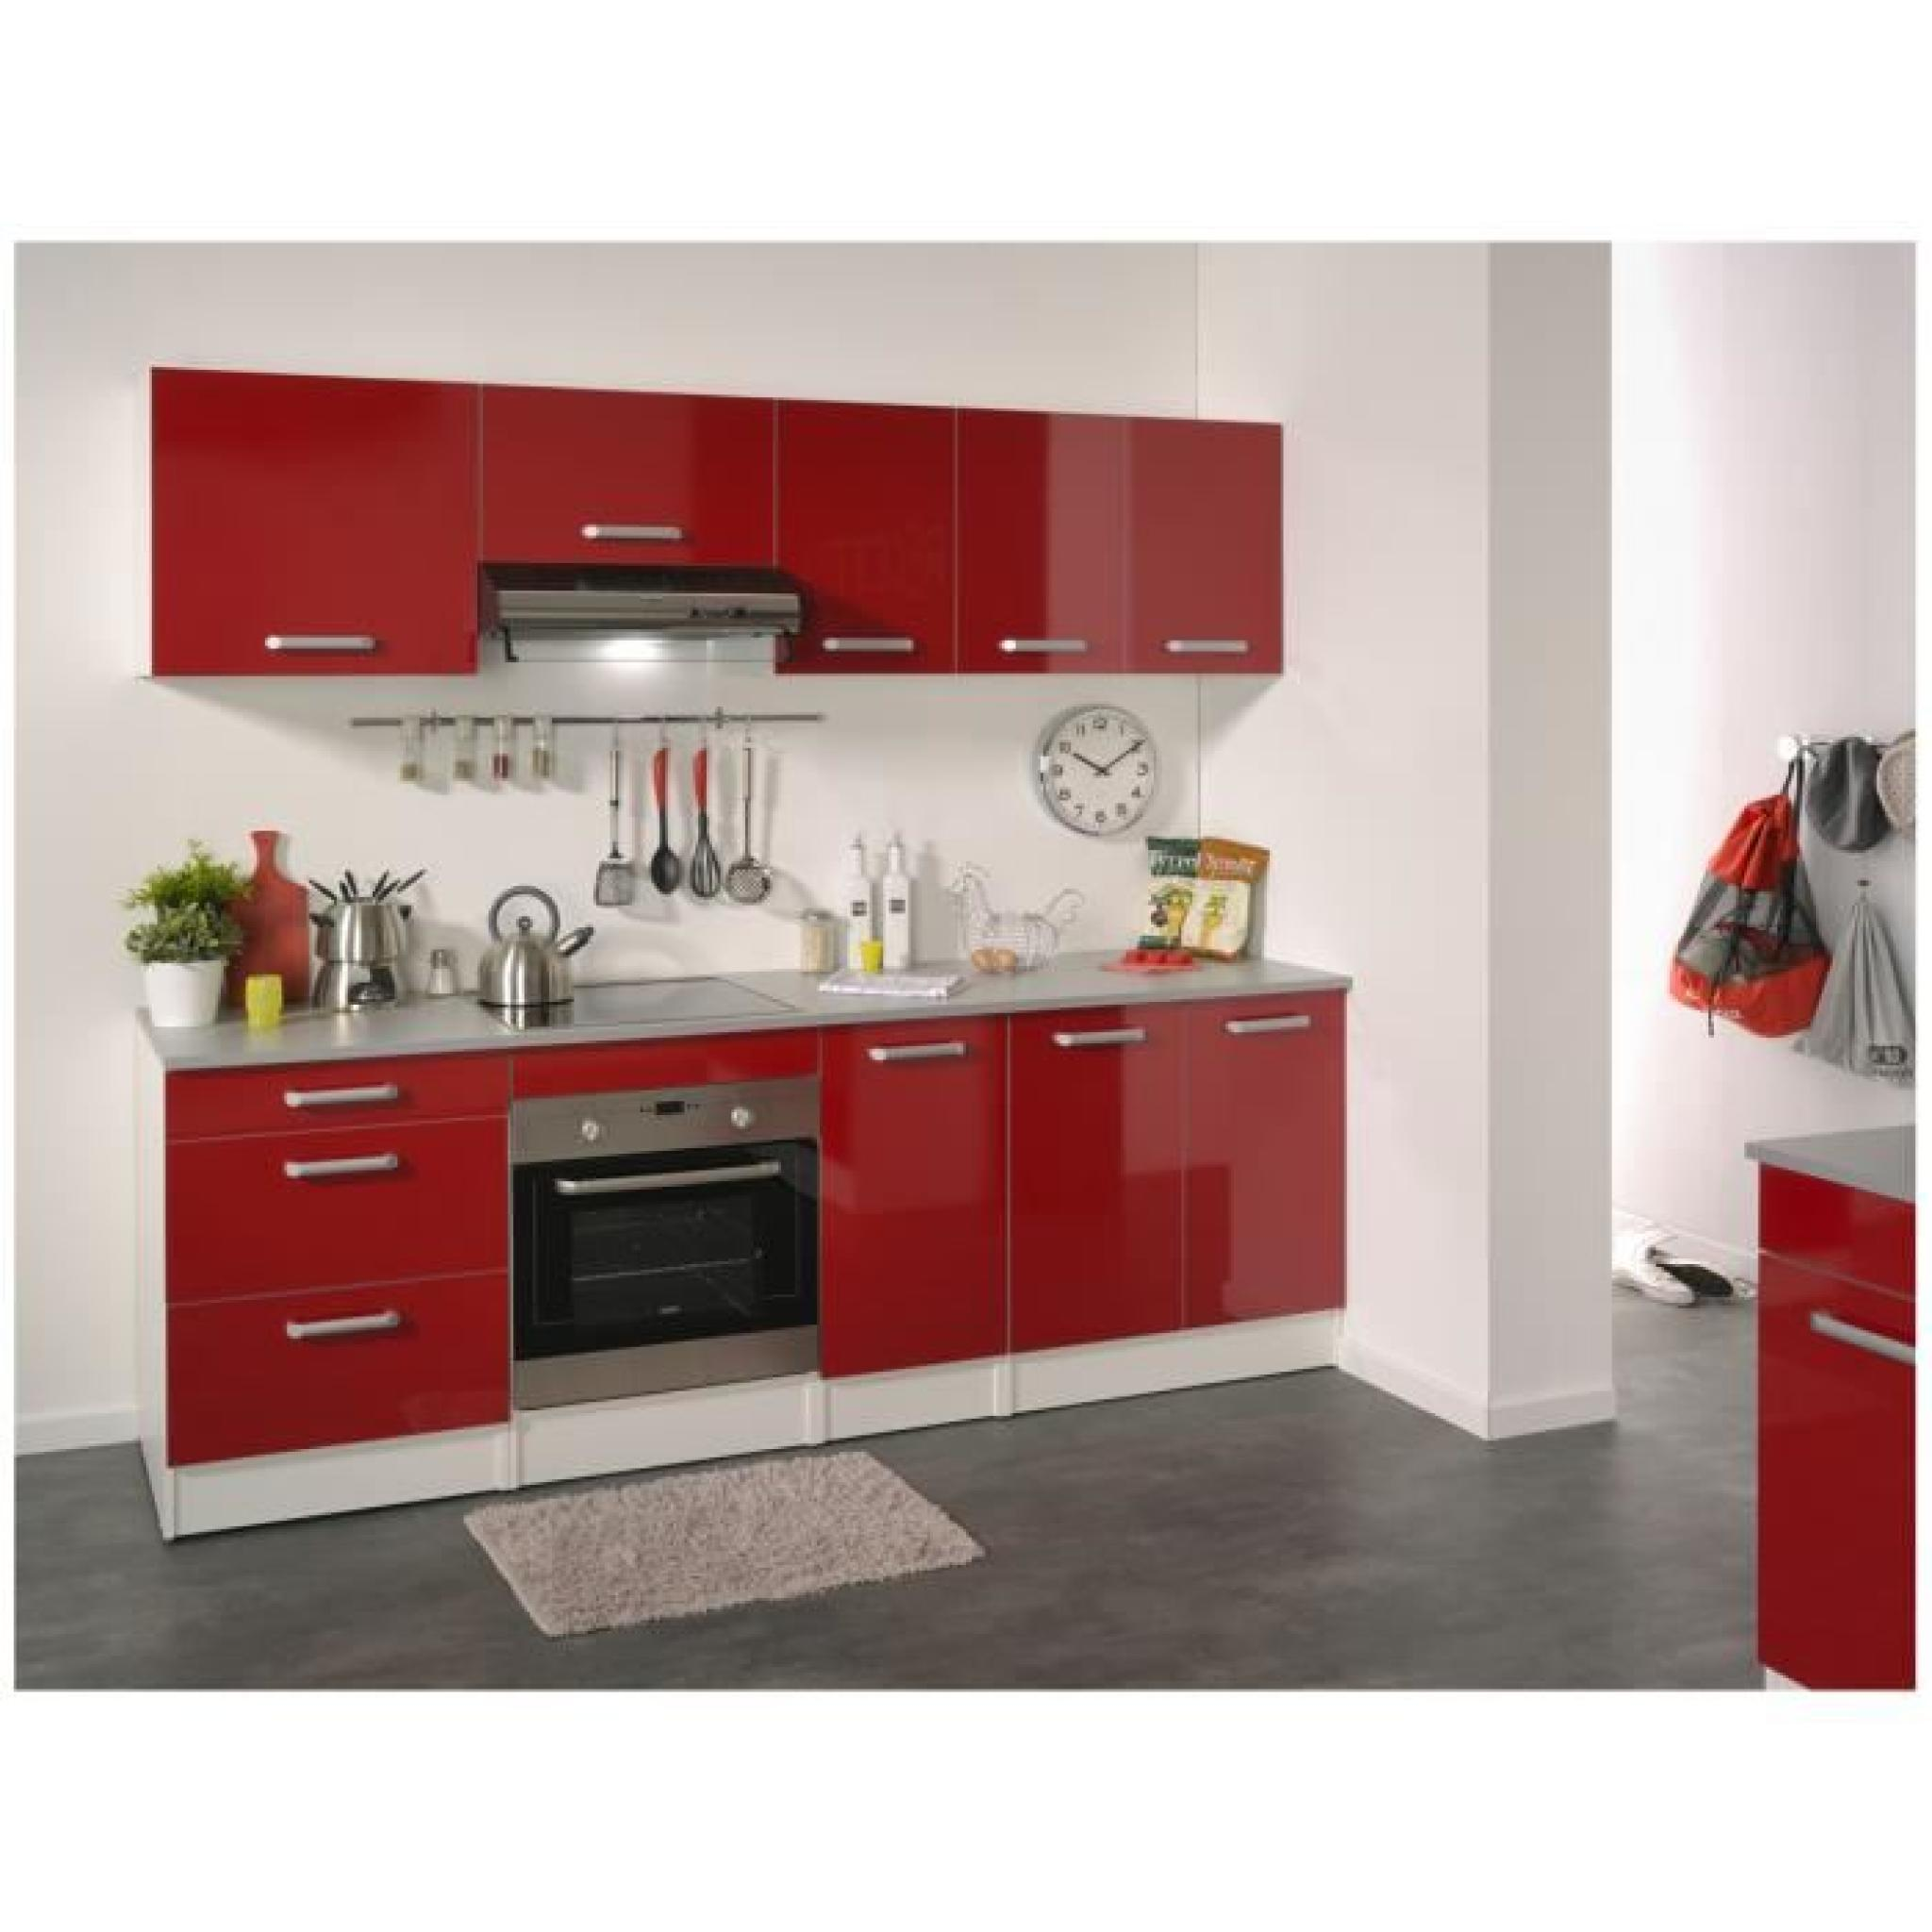 cuisine compl te 240 cm rouge brillant shiny achat vente. Black Bedroom Furniture Sets. Home Design Ideas